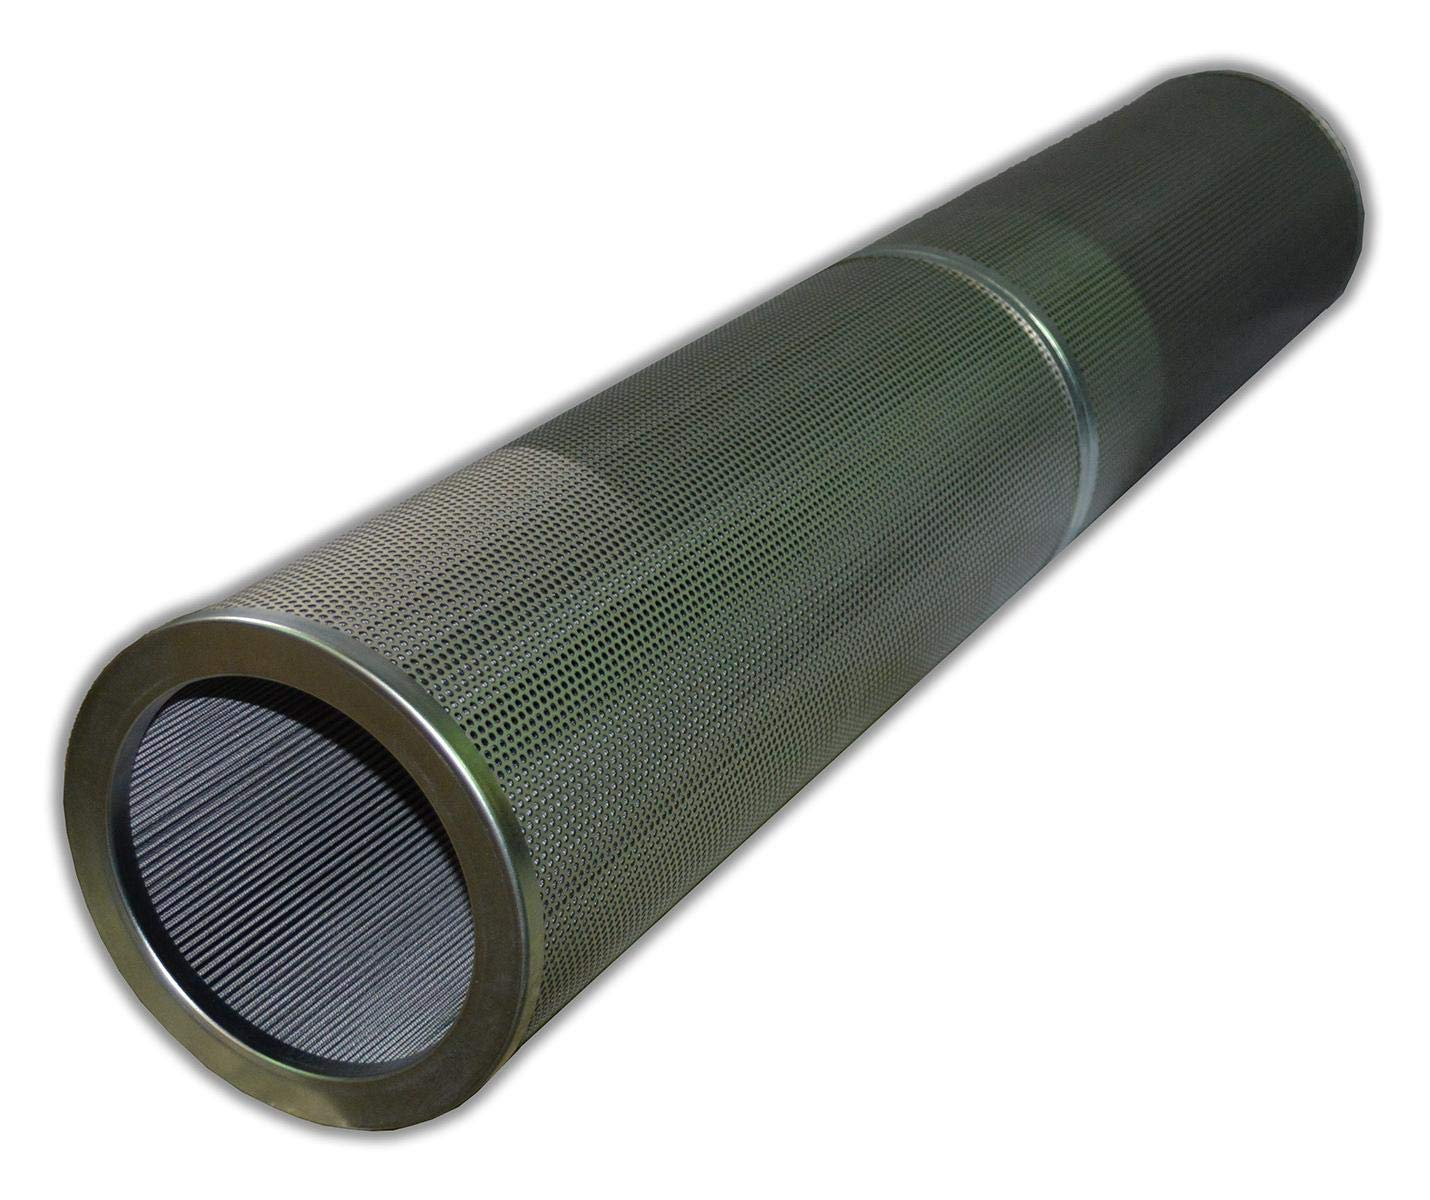 Parker TXW1420B Replacement Hydraulic Filter from Big Filter Store